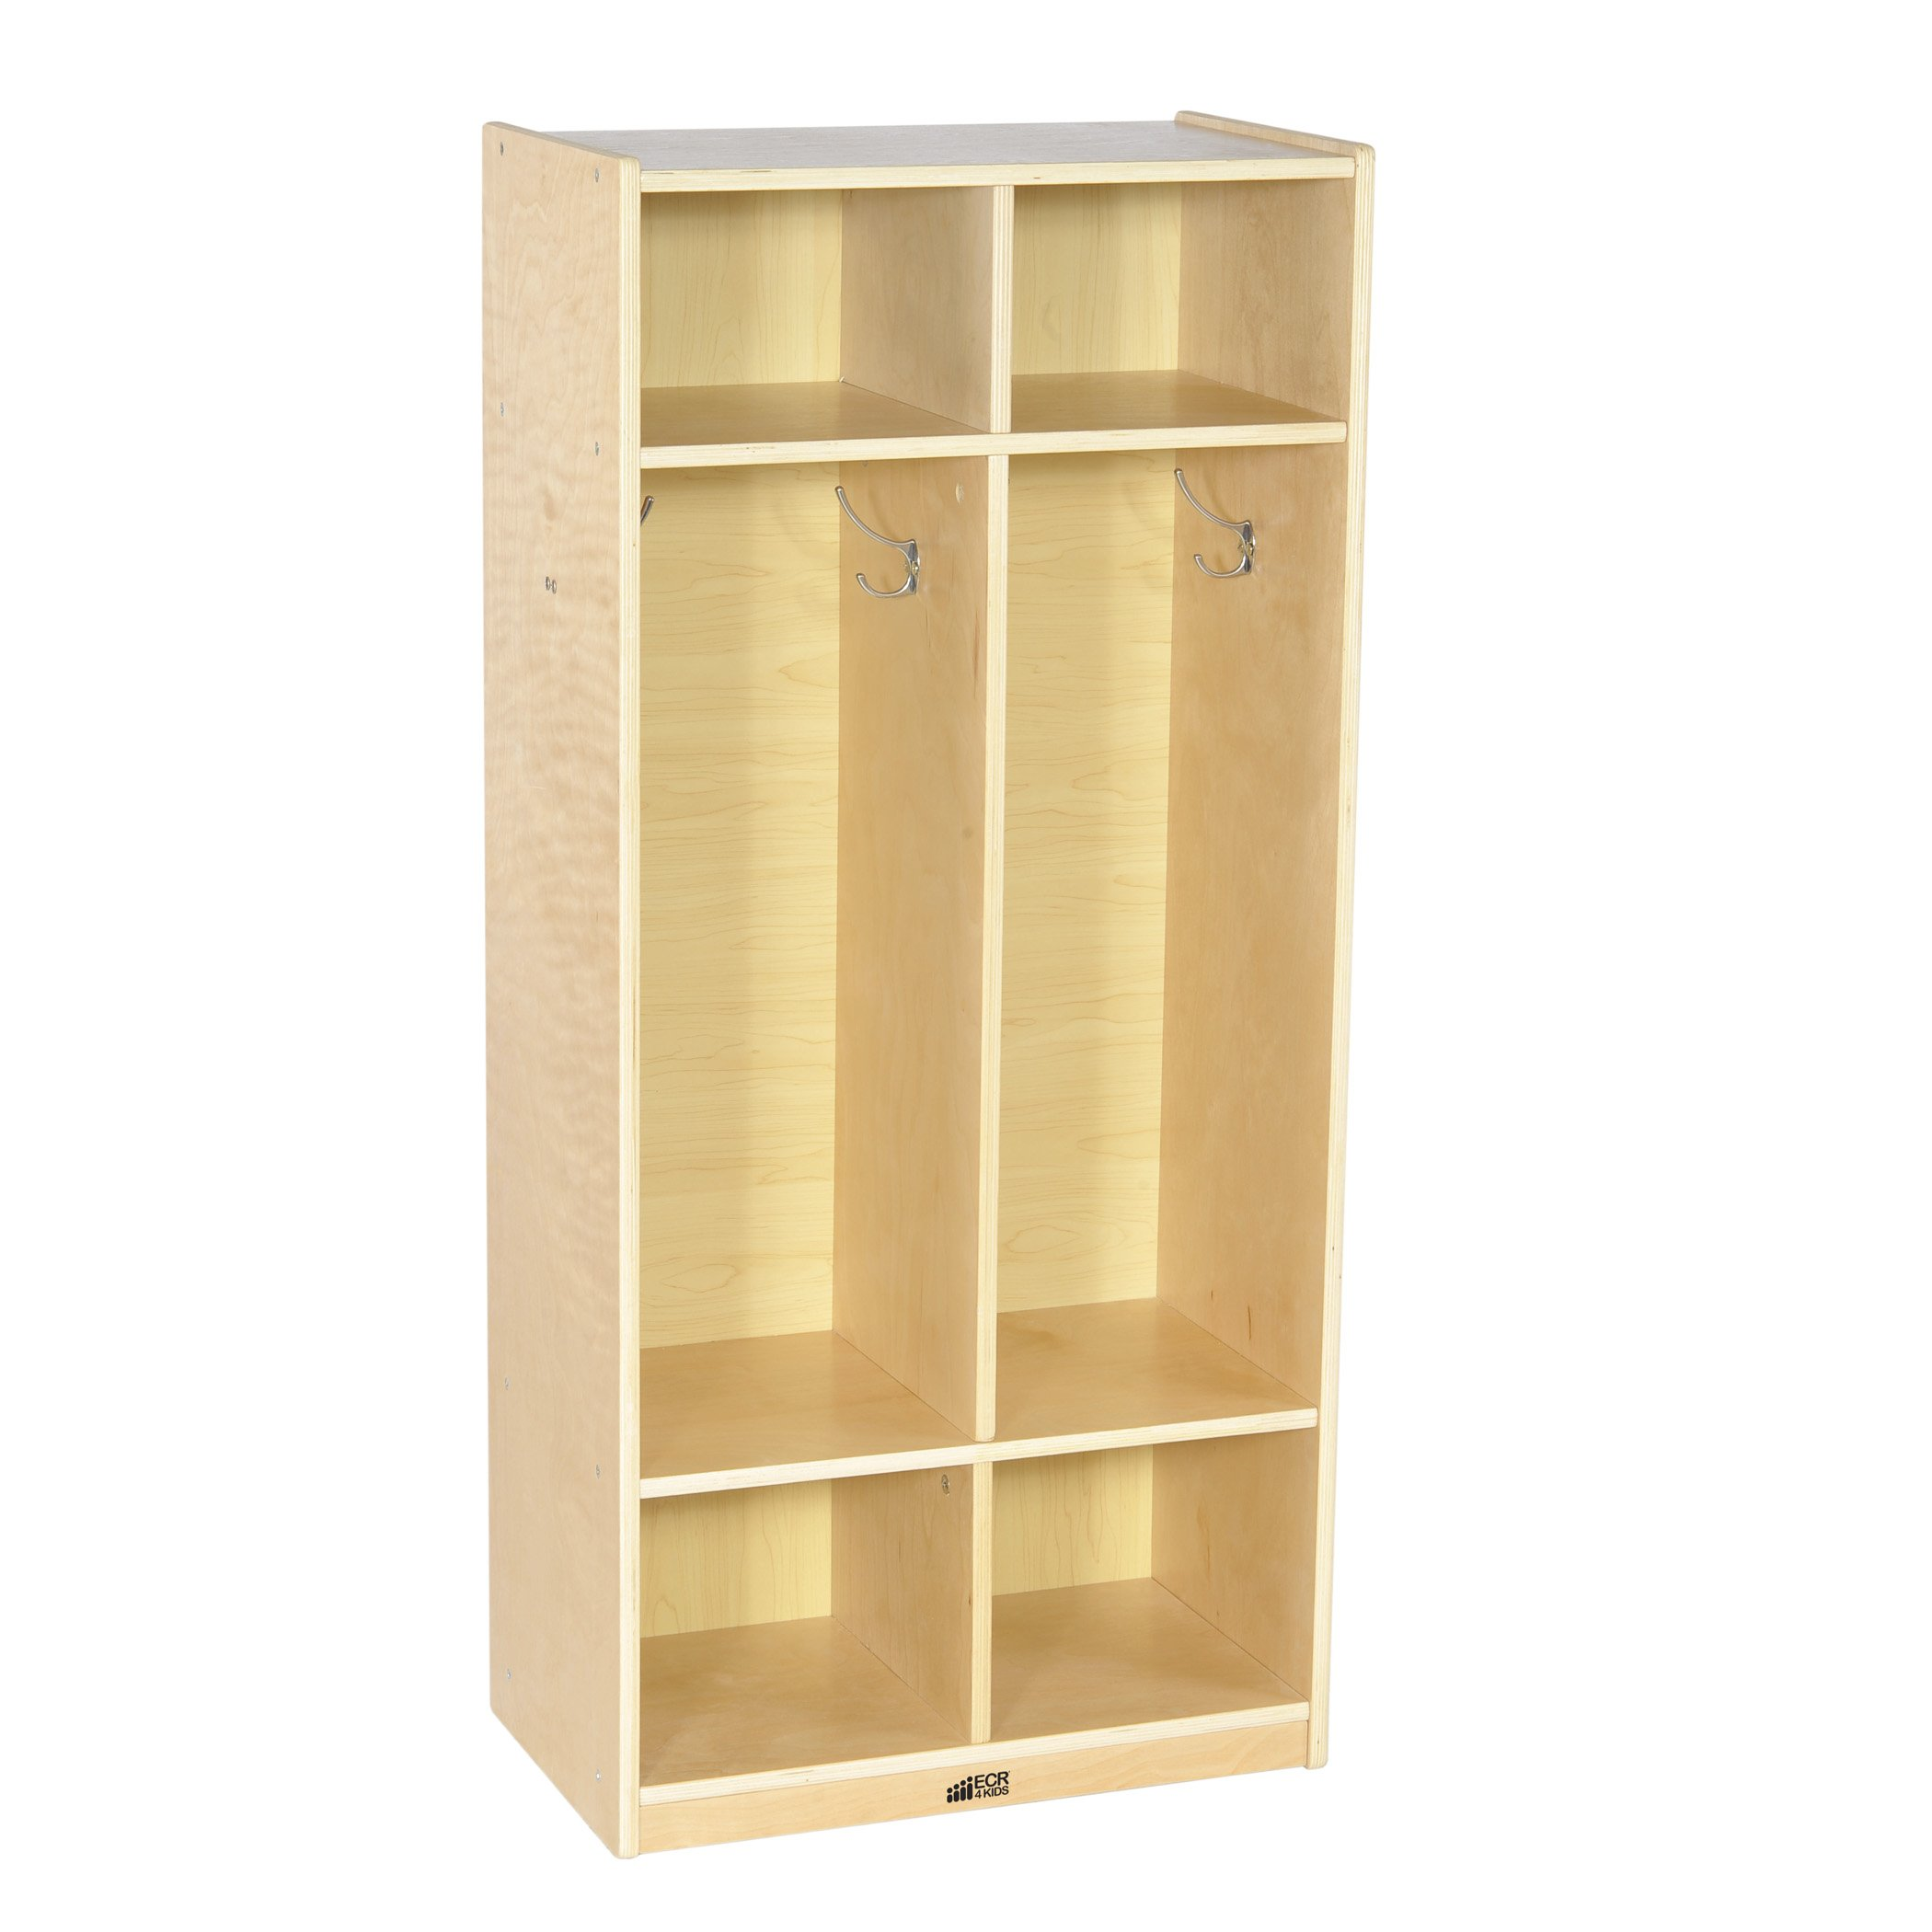 ECR4Kids Birch School Coat Locker for Toddlers and Kids, 2-Section, Natural